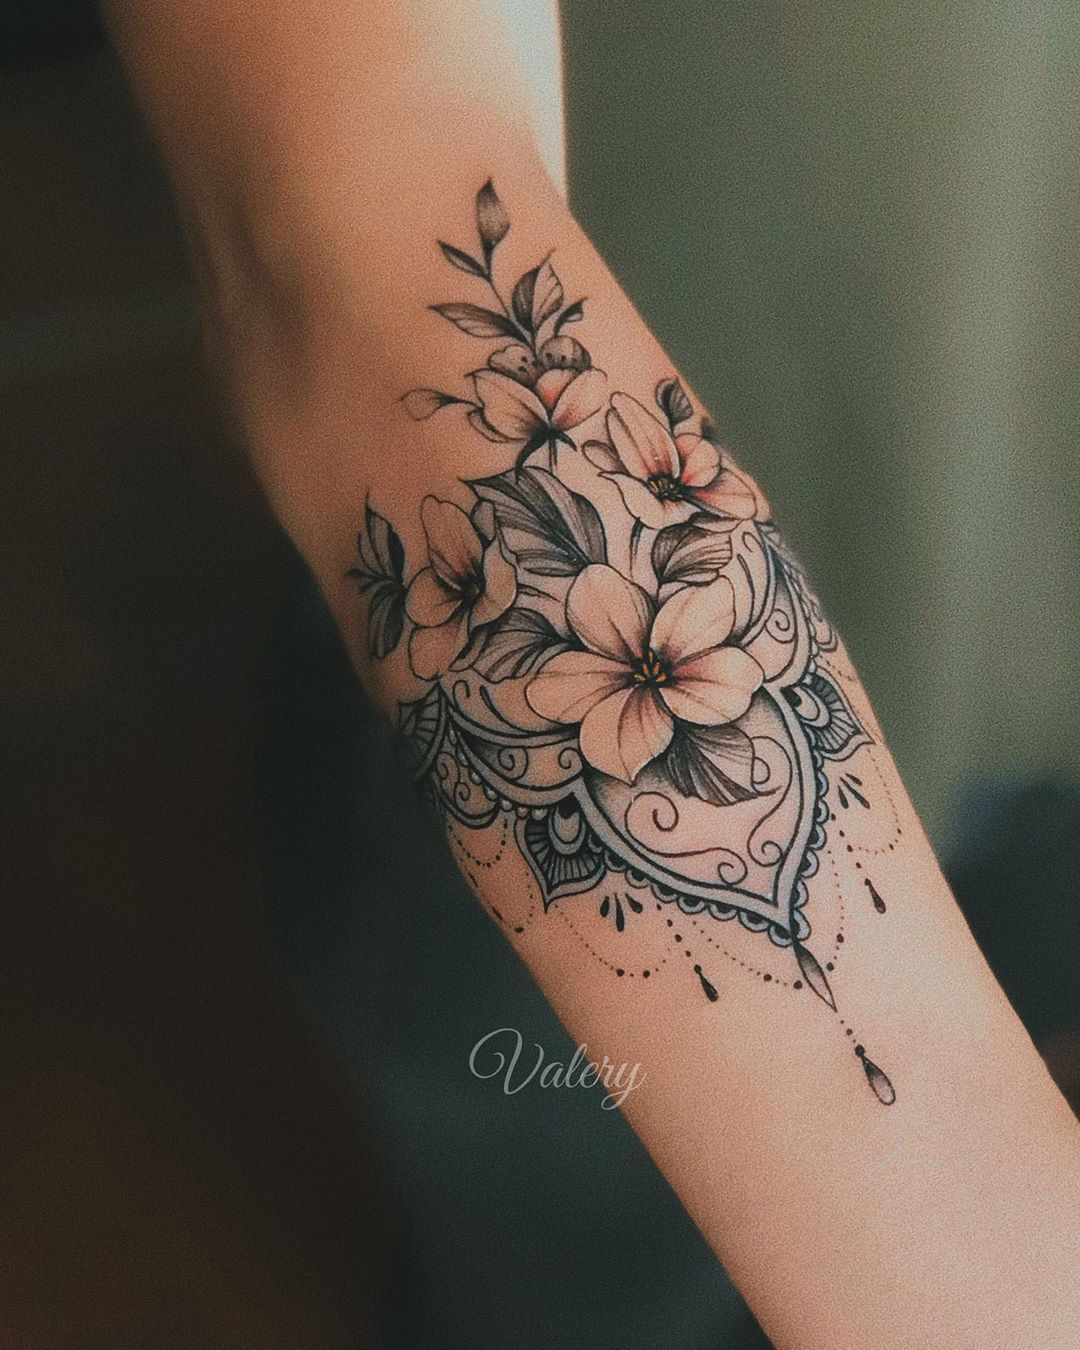 Pin By Erin Kelley On Tattoo Ideas With Images Forearm Tattoo Women Forearm Flower Tattoo Inspirational Tattoos